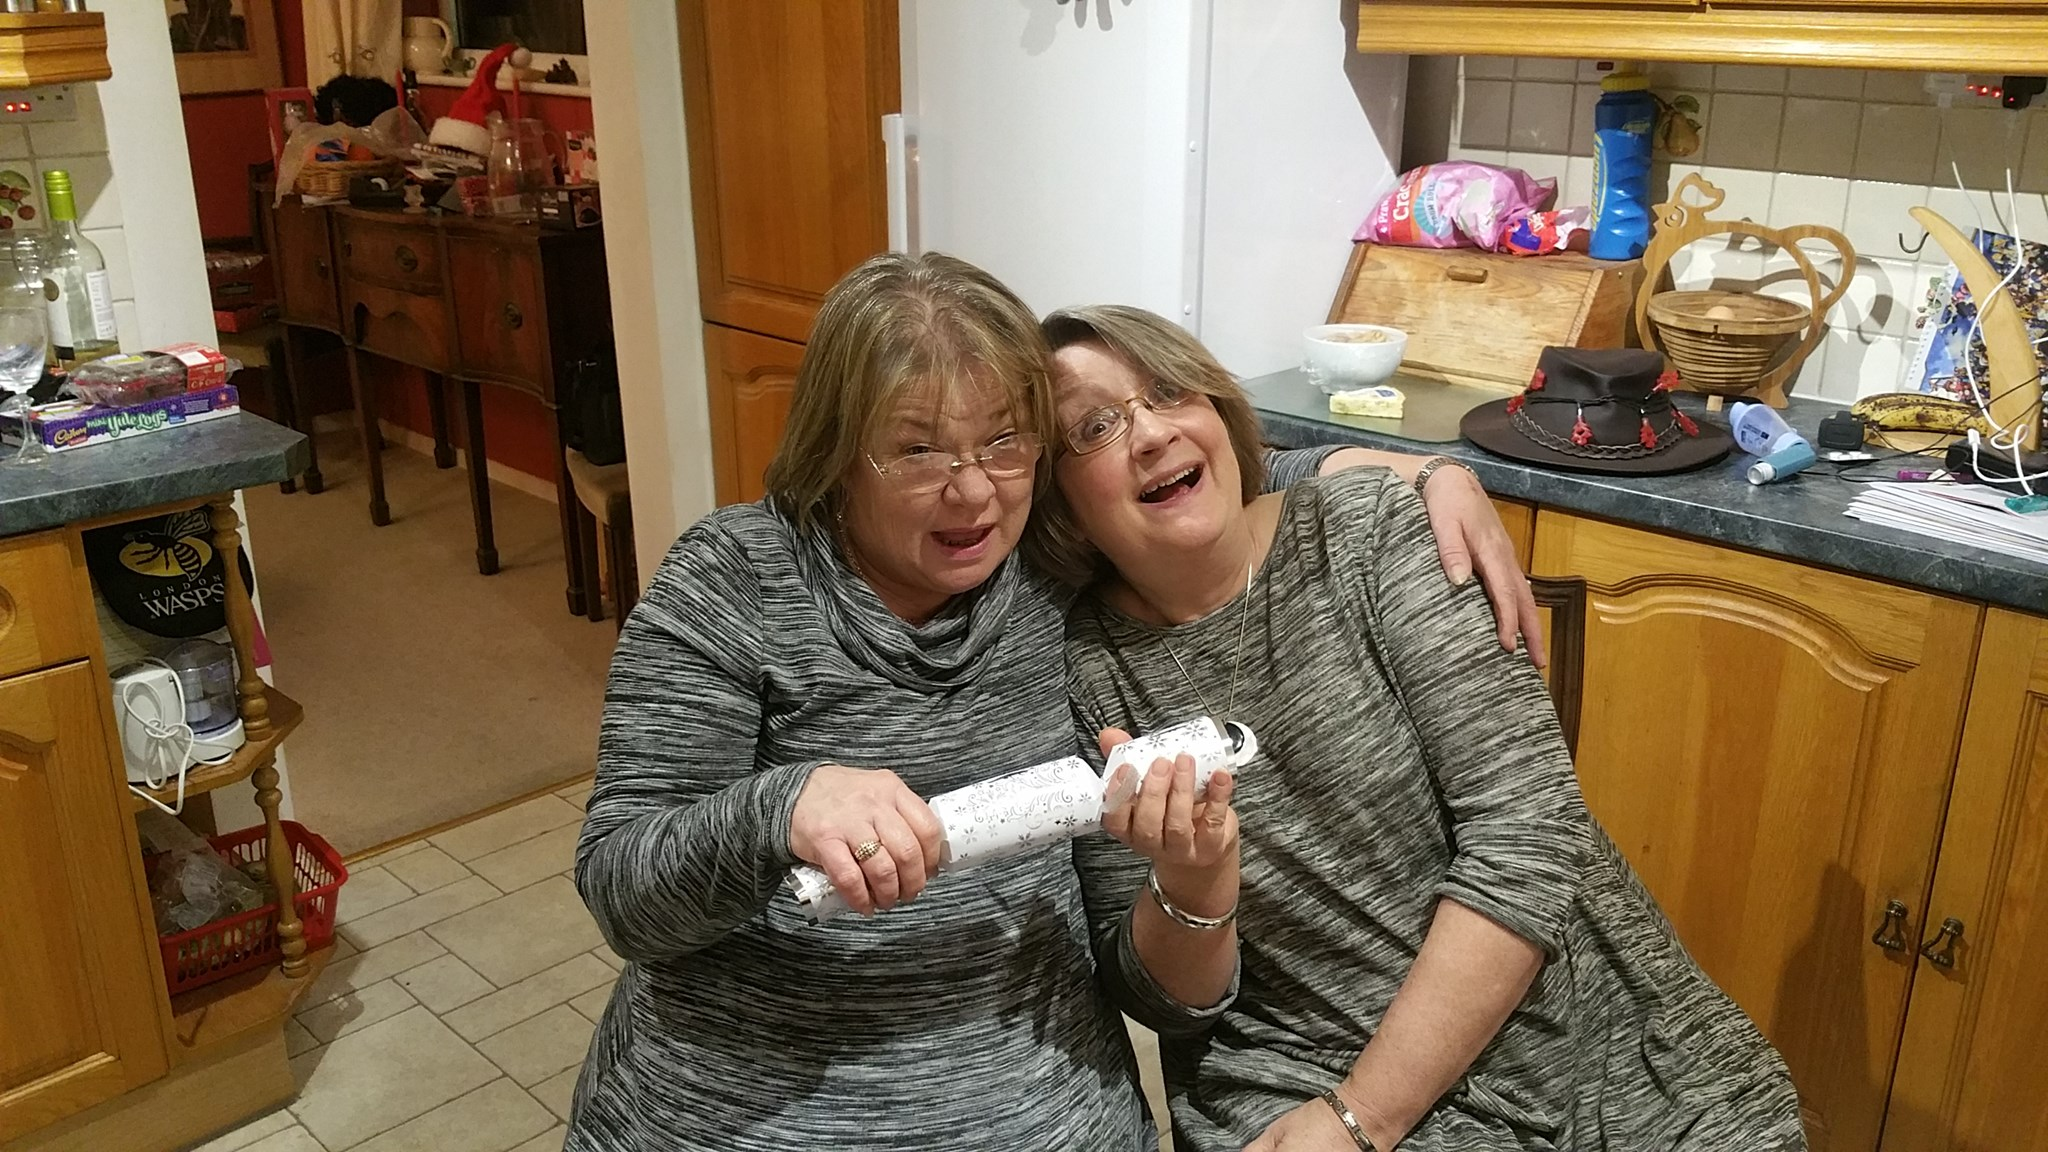 The night we were twins! In memory of Barbara, my lovely friend. Rose x